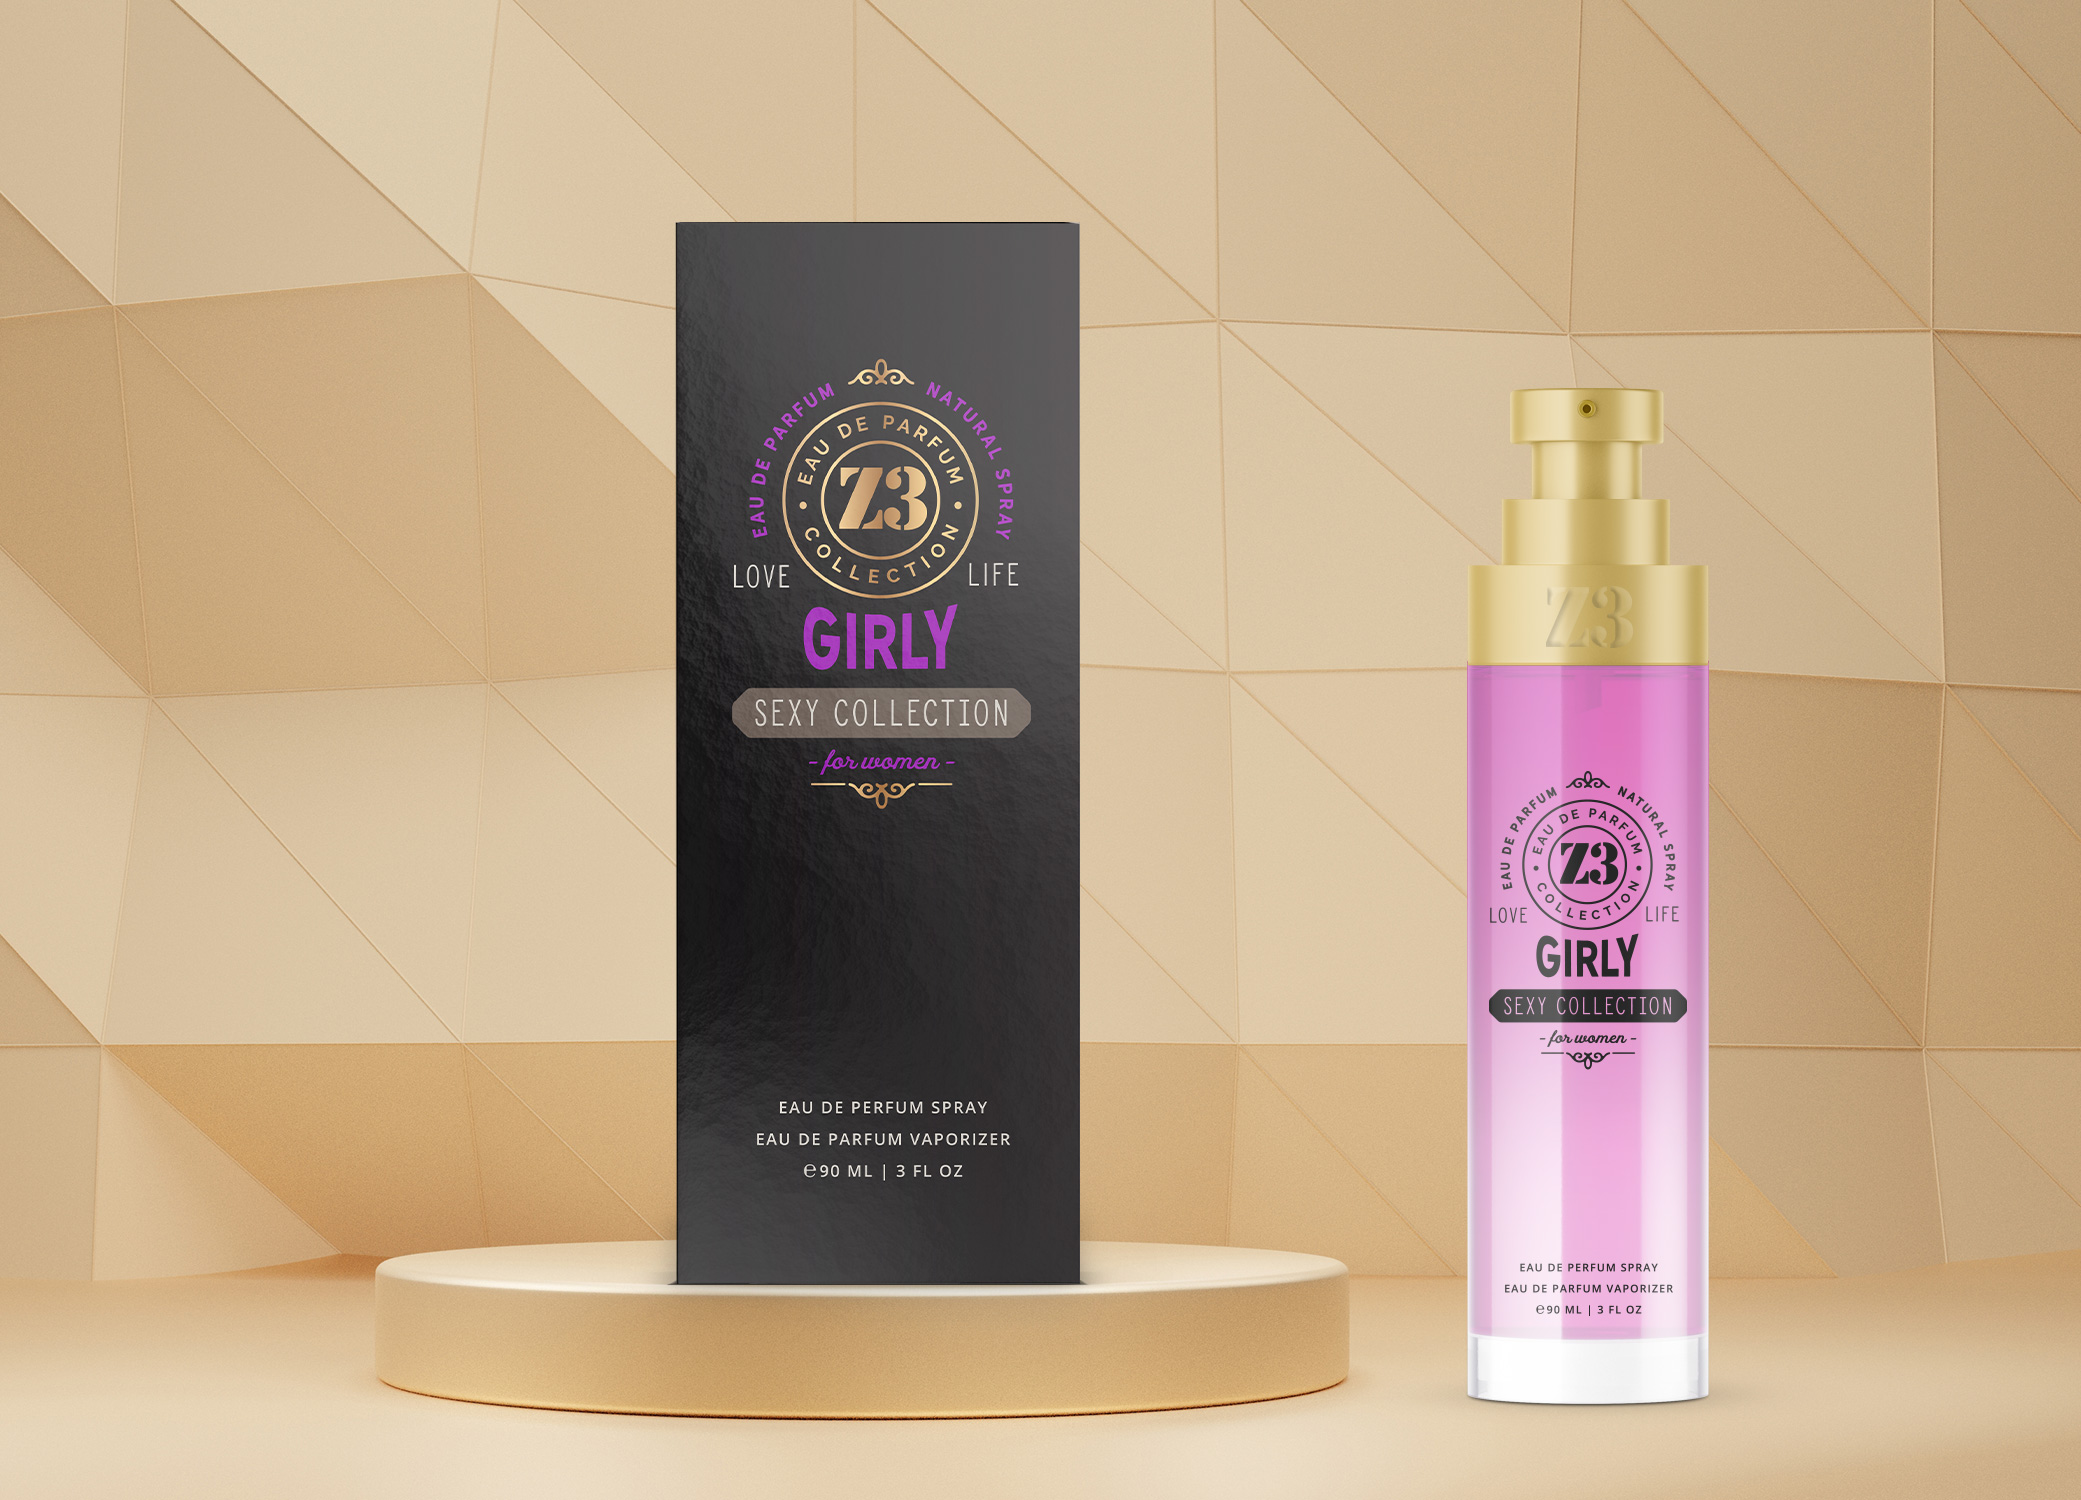 YZY Perfume women's fragrance bottle and package design in black, purple, and gold for Z3 Girly product.